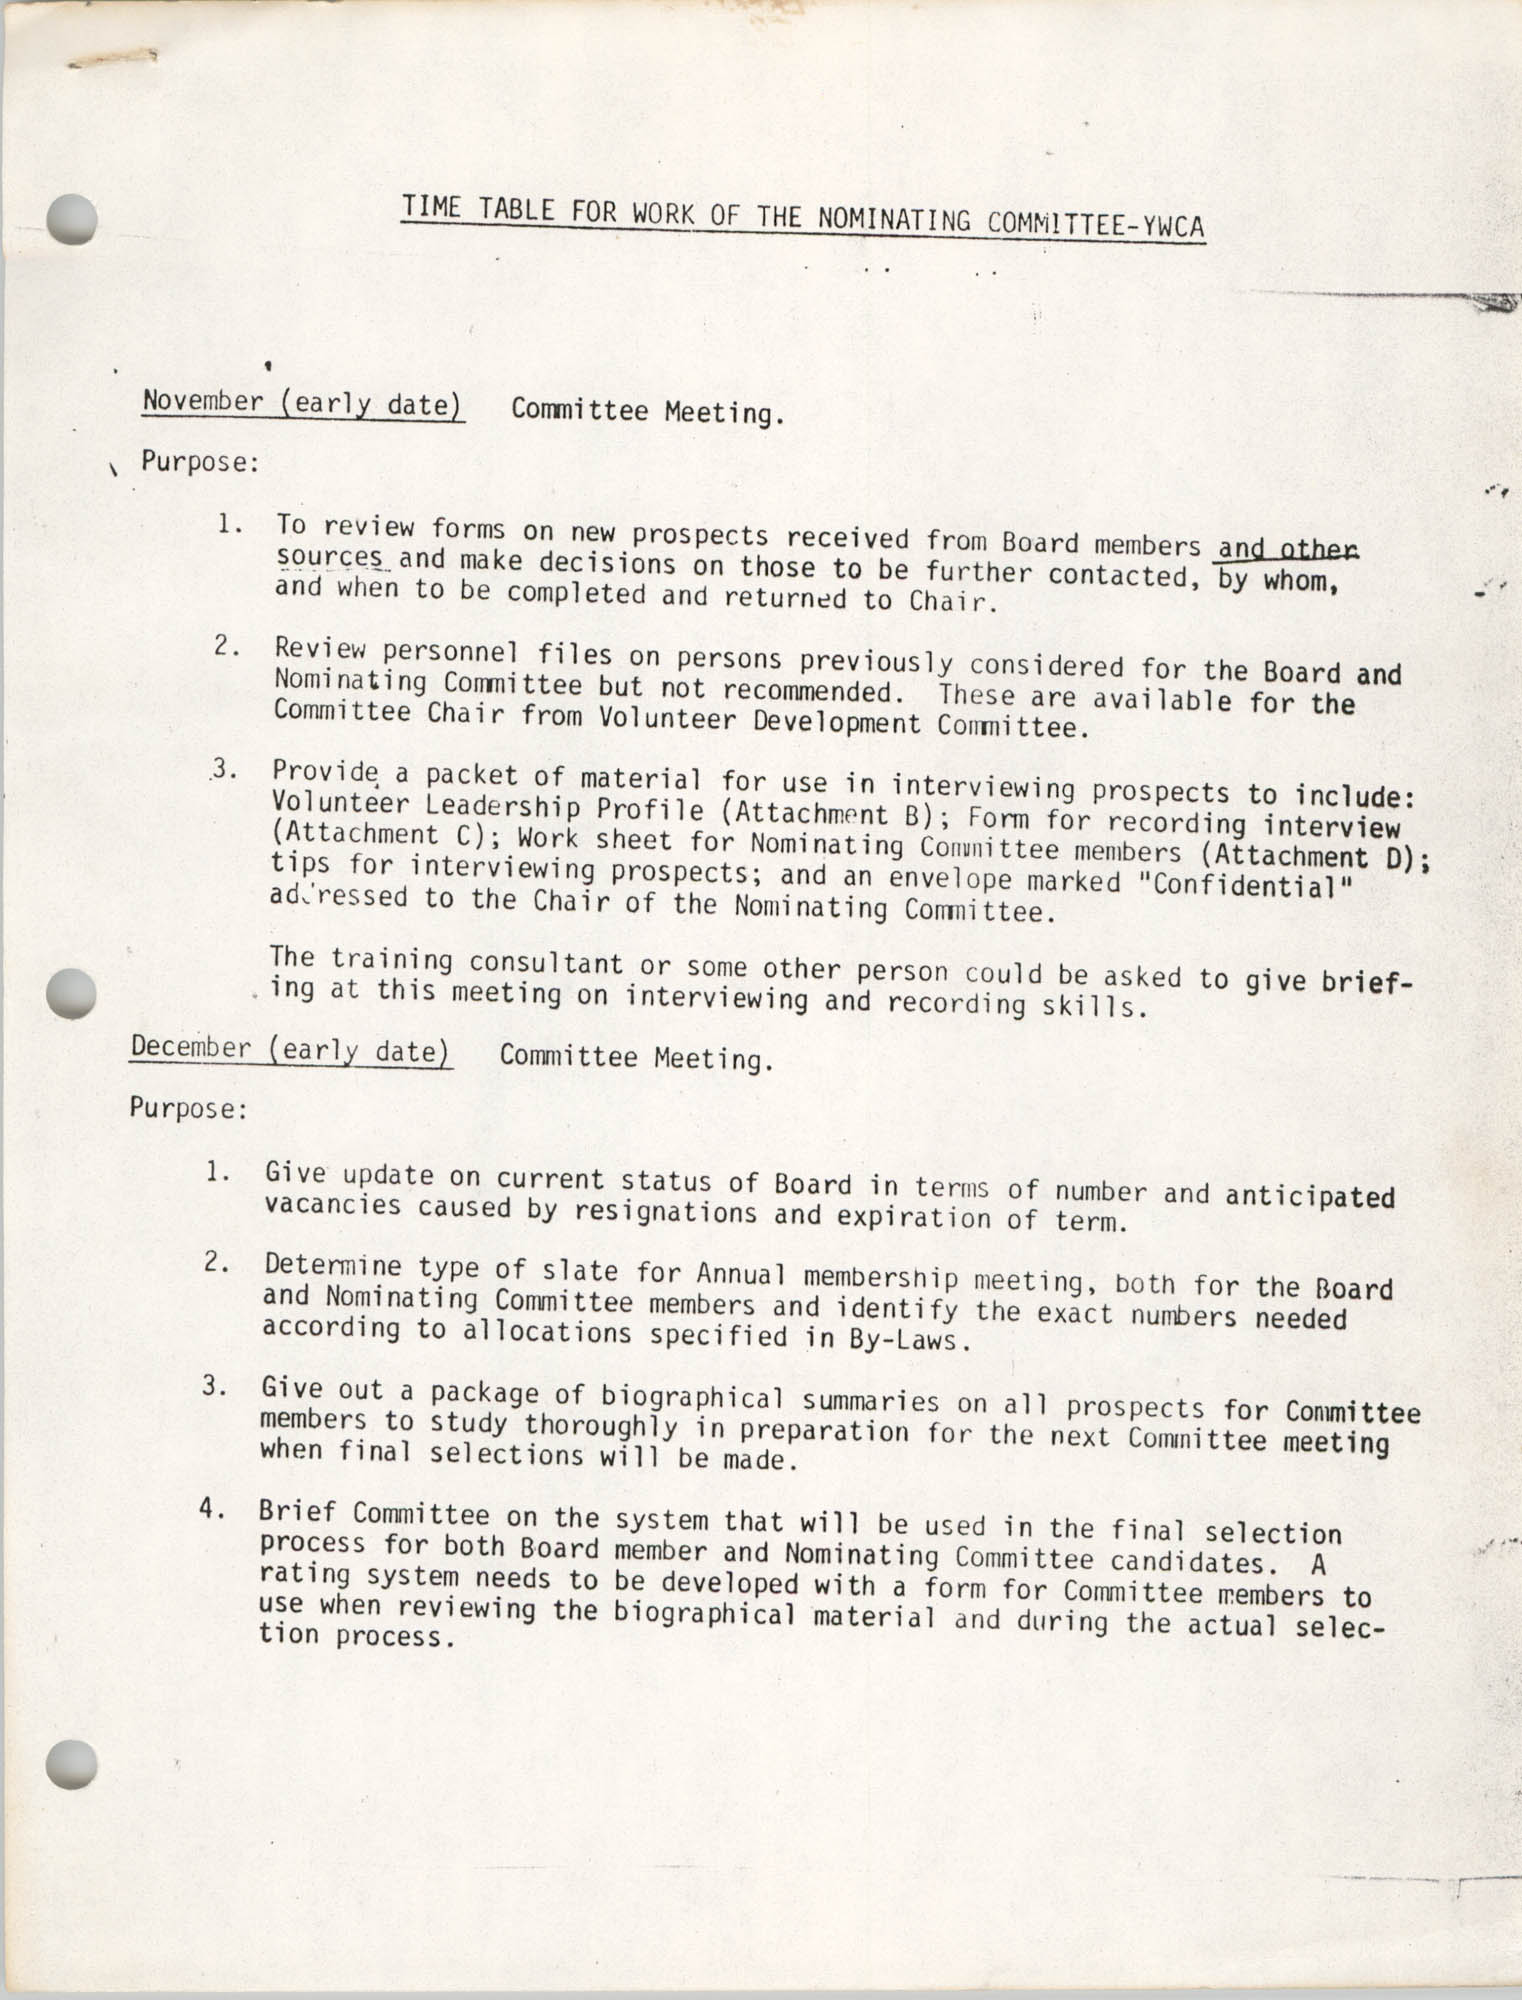 Time Table for Work of the Nominating Committee, Page 1